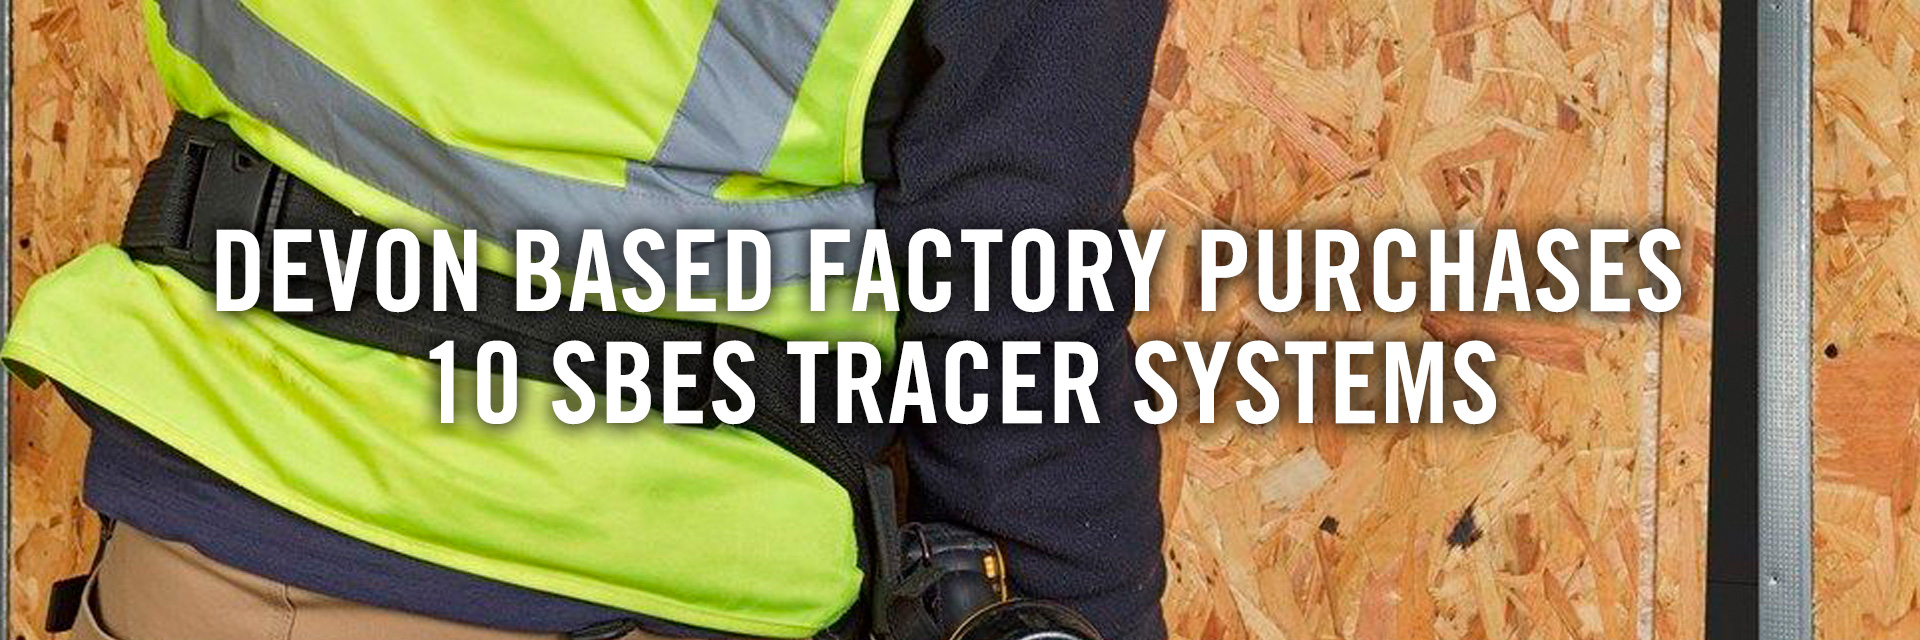 SBES Tracer Alarm System